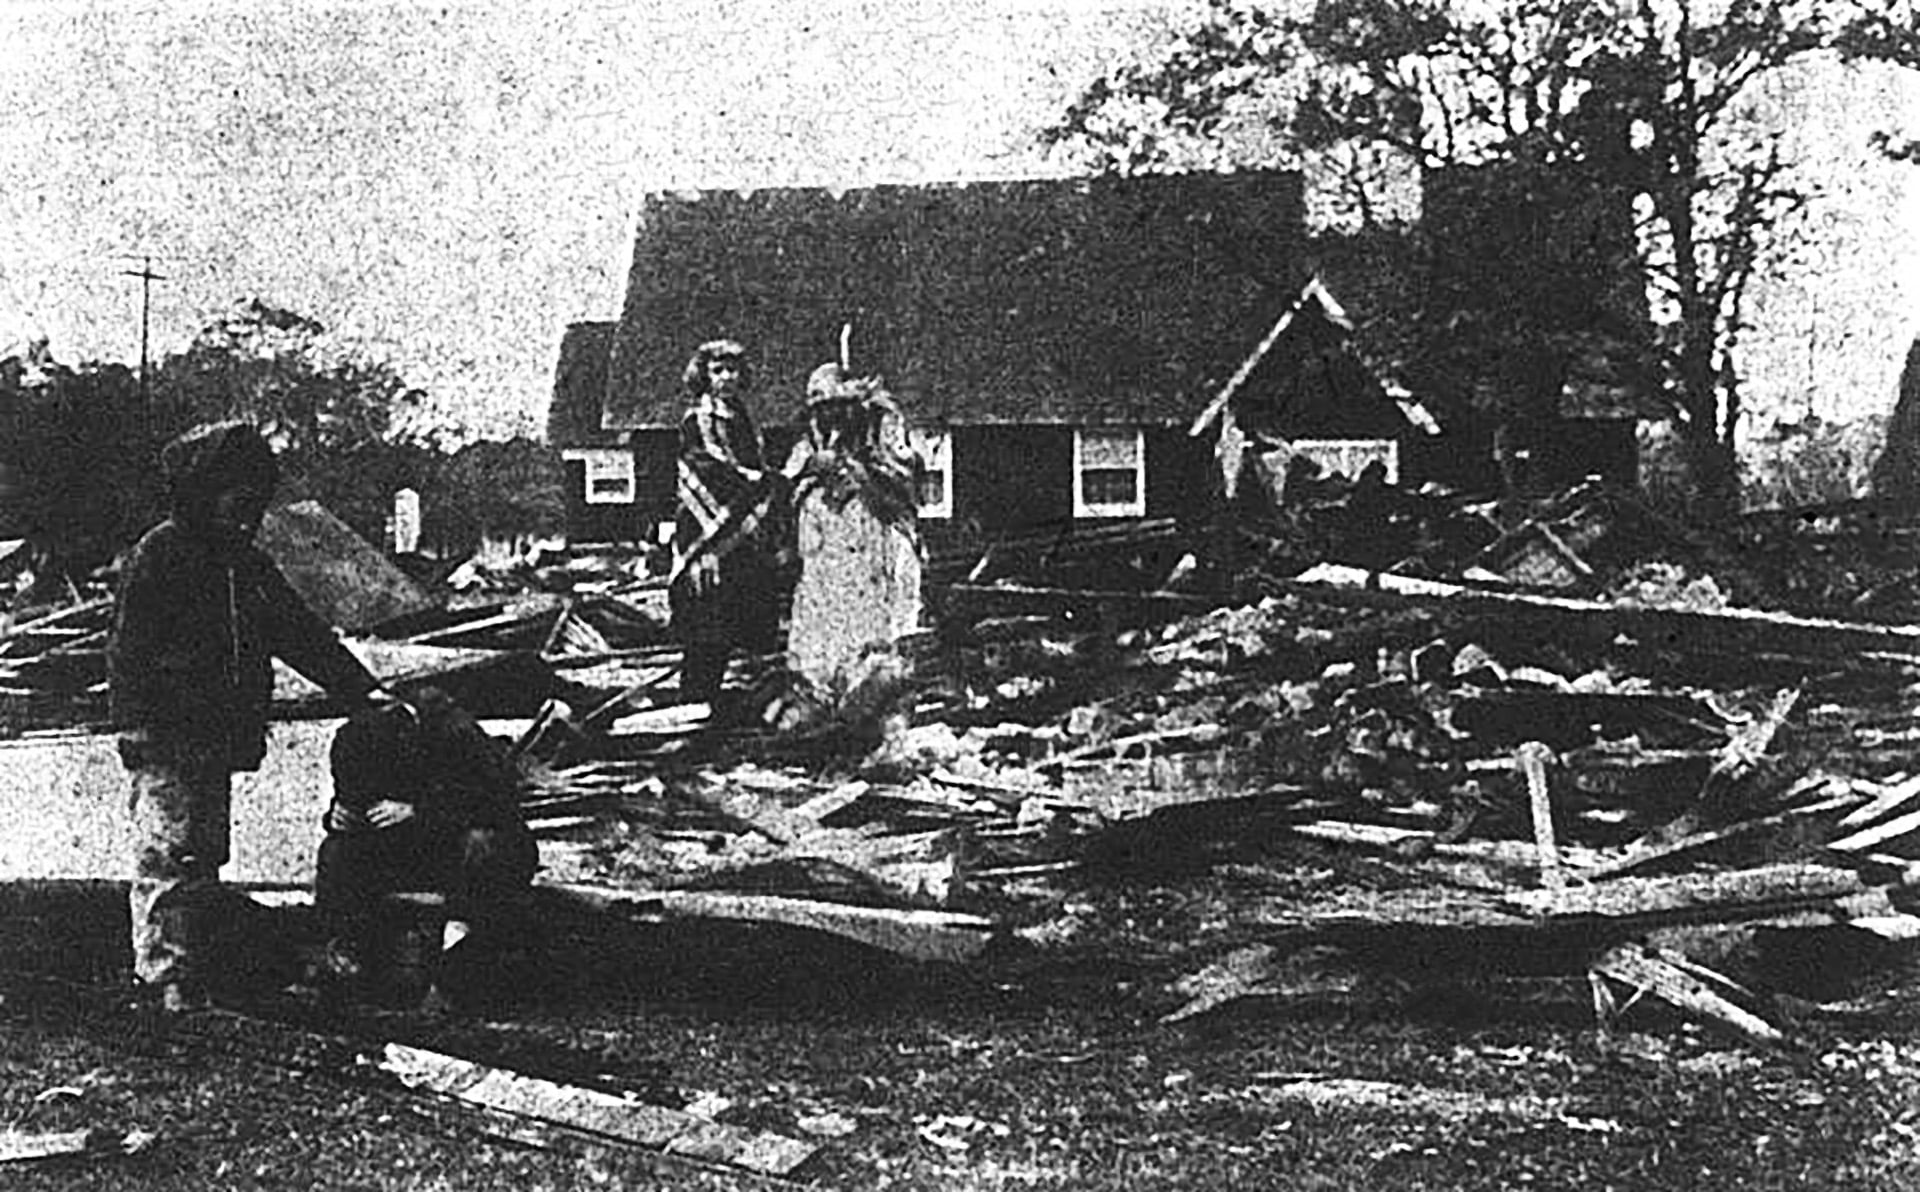 Shinnecock-School-Burned-Down-Southampton-Press-November-9-1967 Shinnecock Indian Reservation Jeremy Dennis On This Site